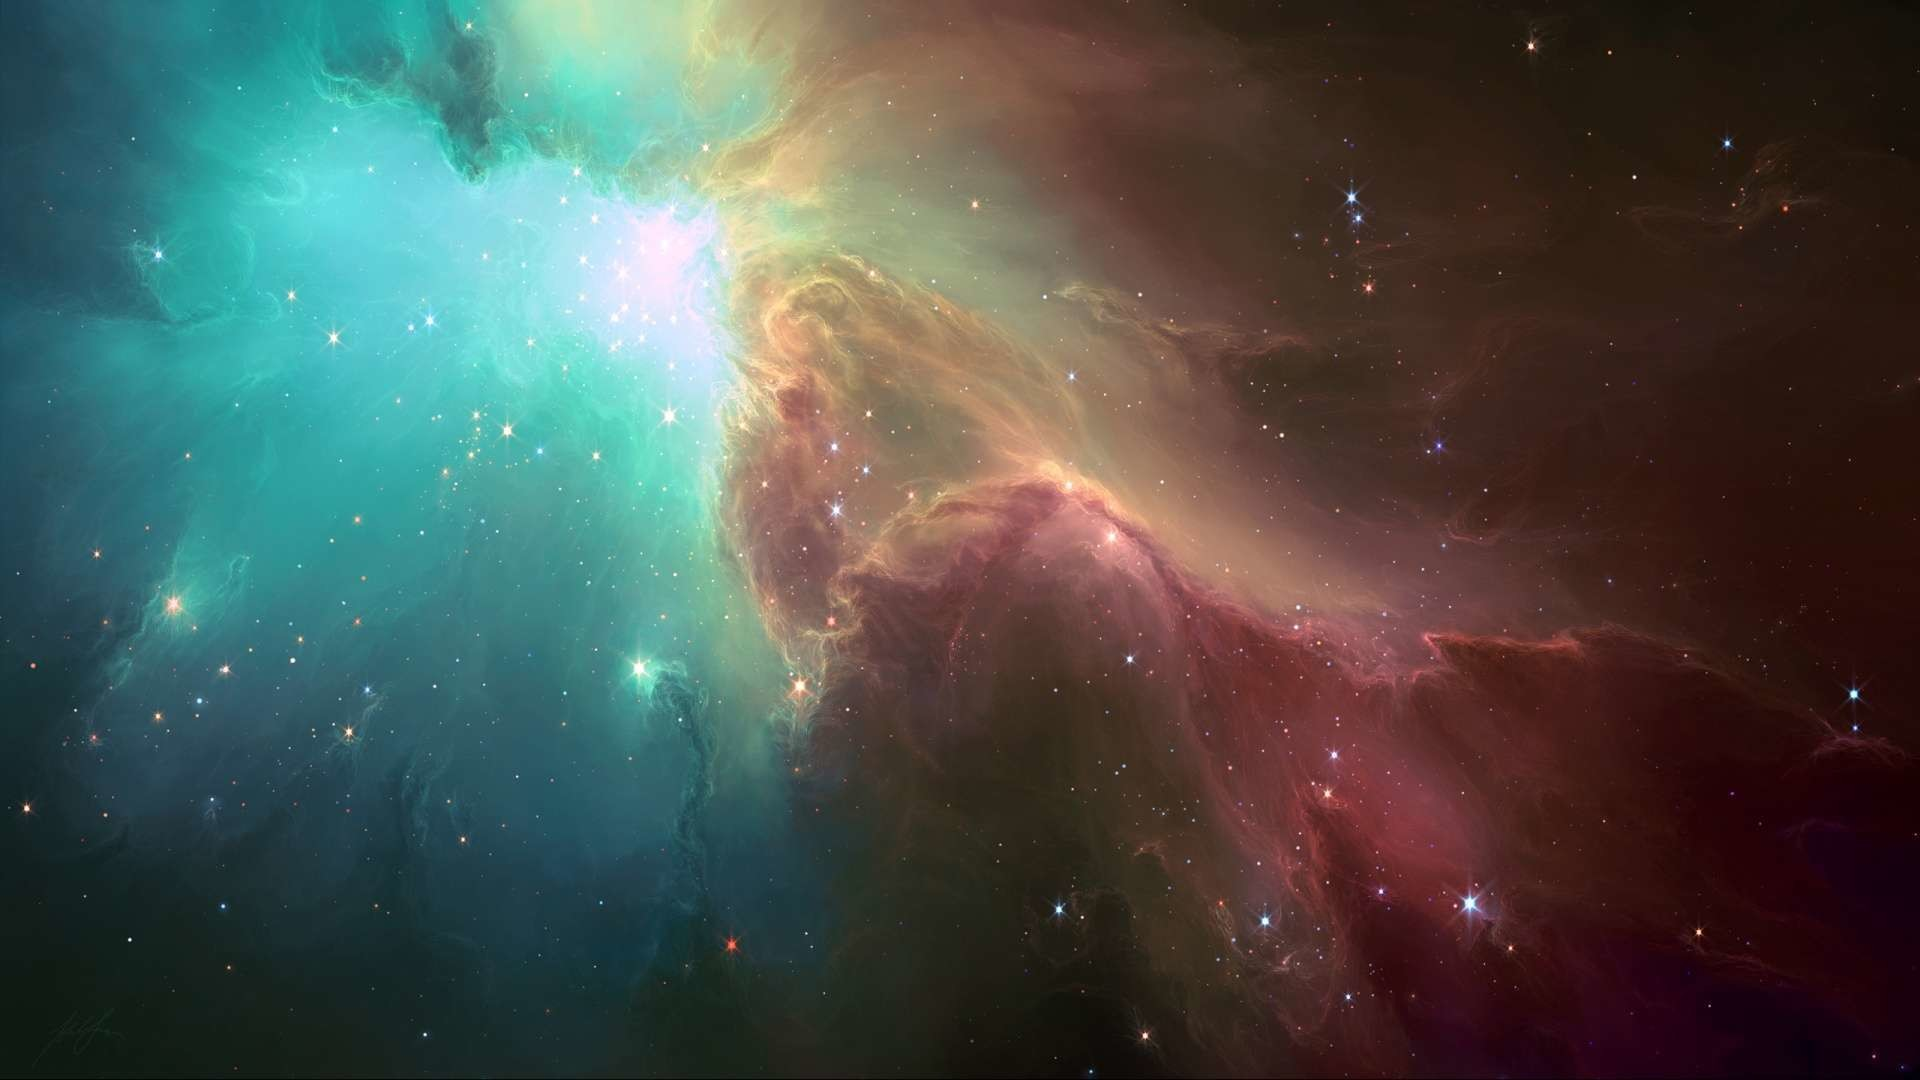 Hd Trippy Space Wallpapers 1080P